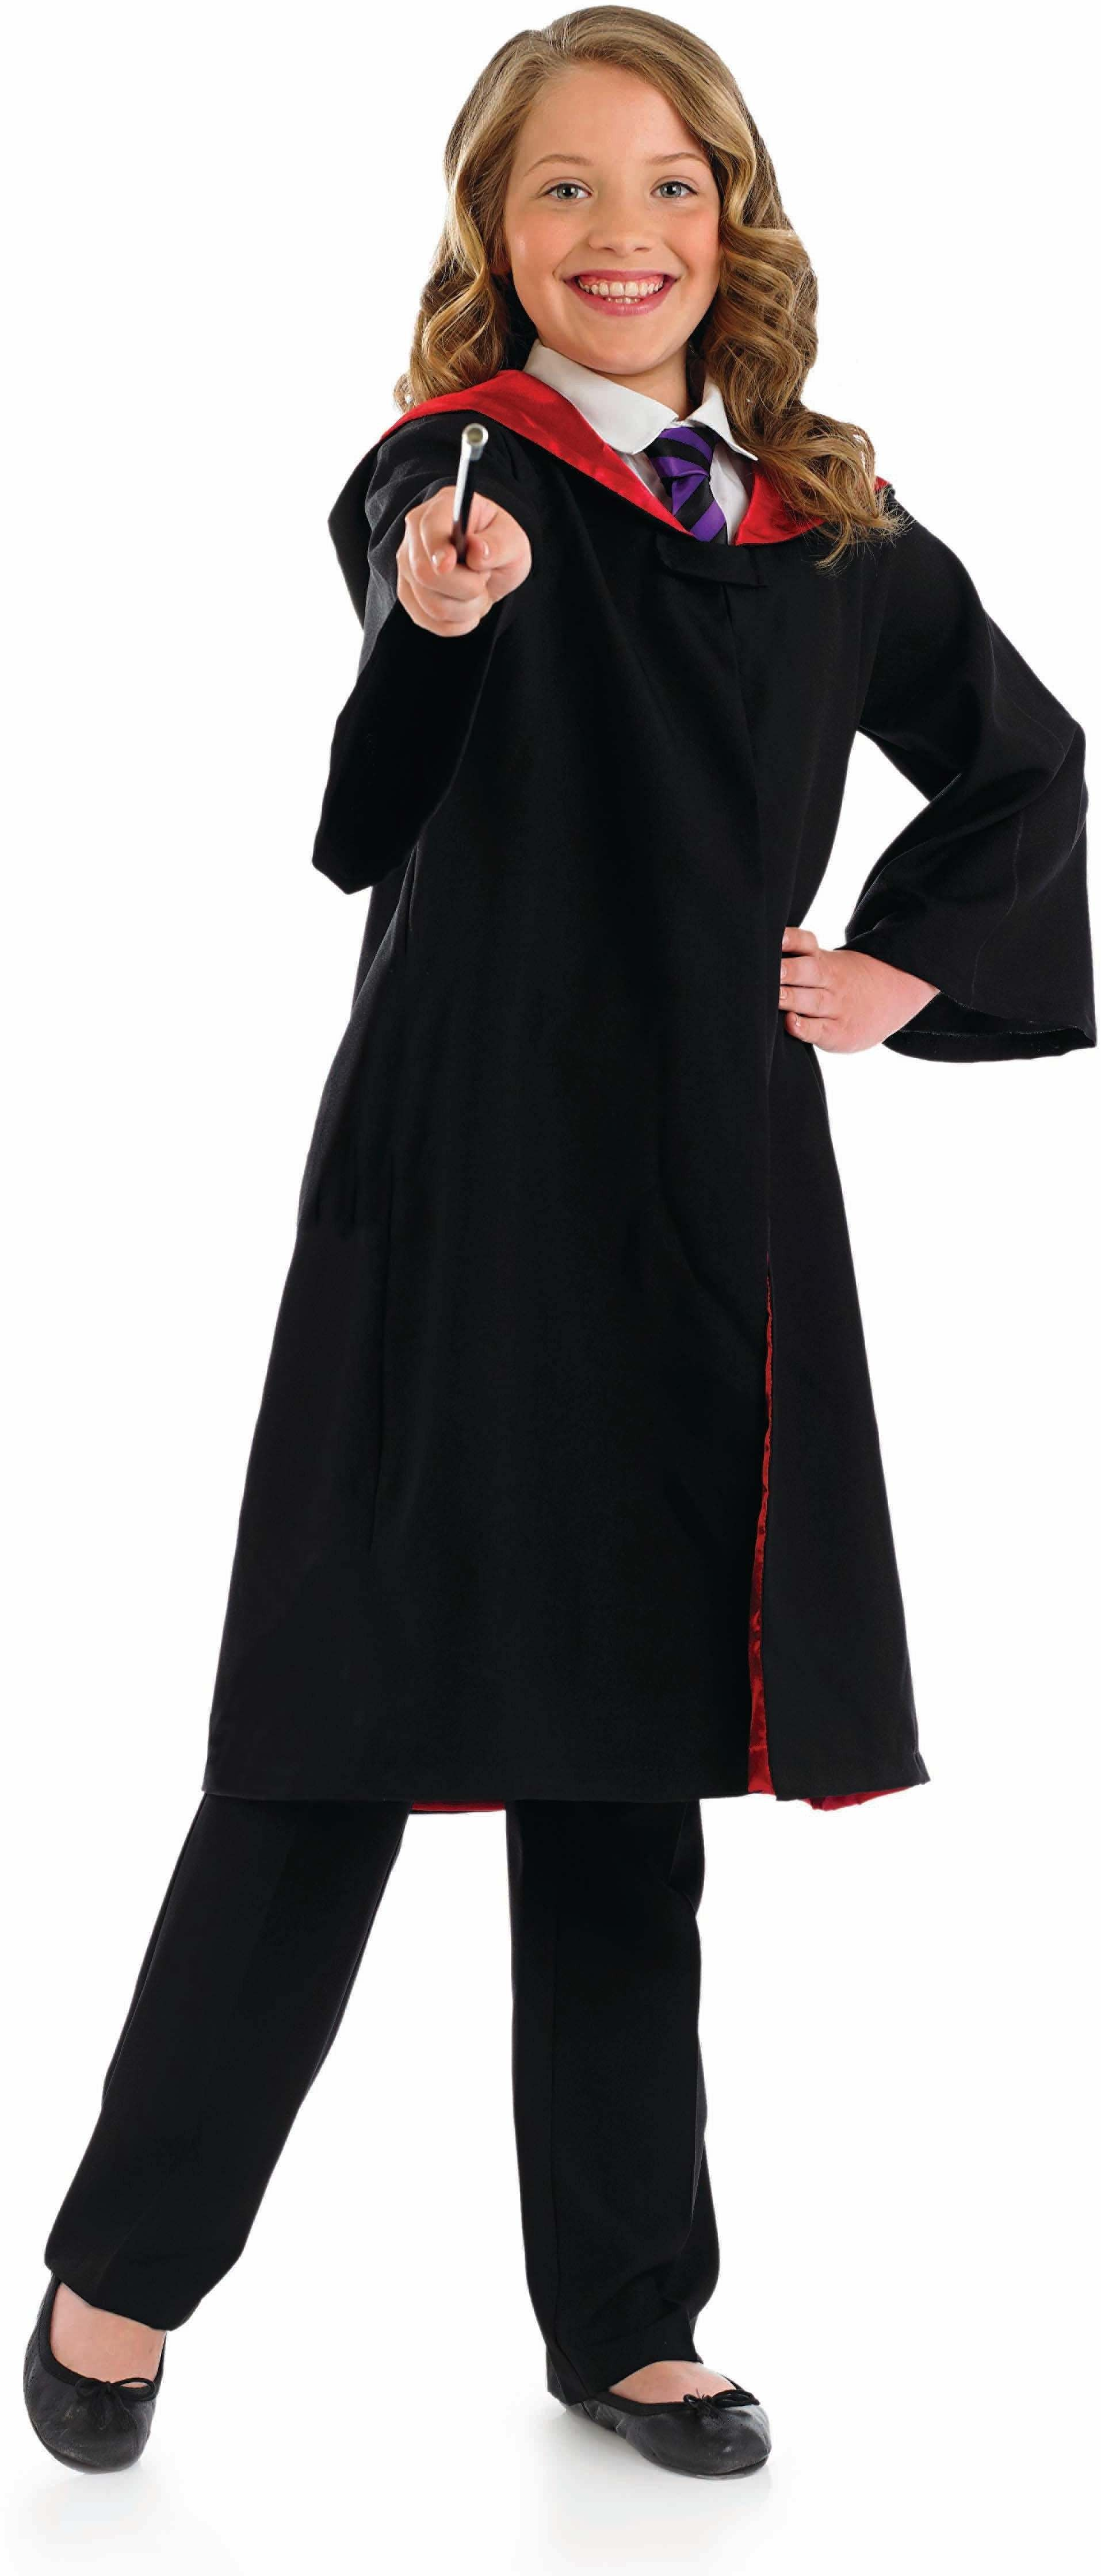 Adult Unisex Wizard Cape & Wand Wizards Outfit - (Black)